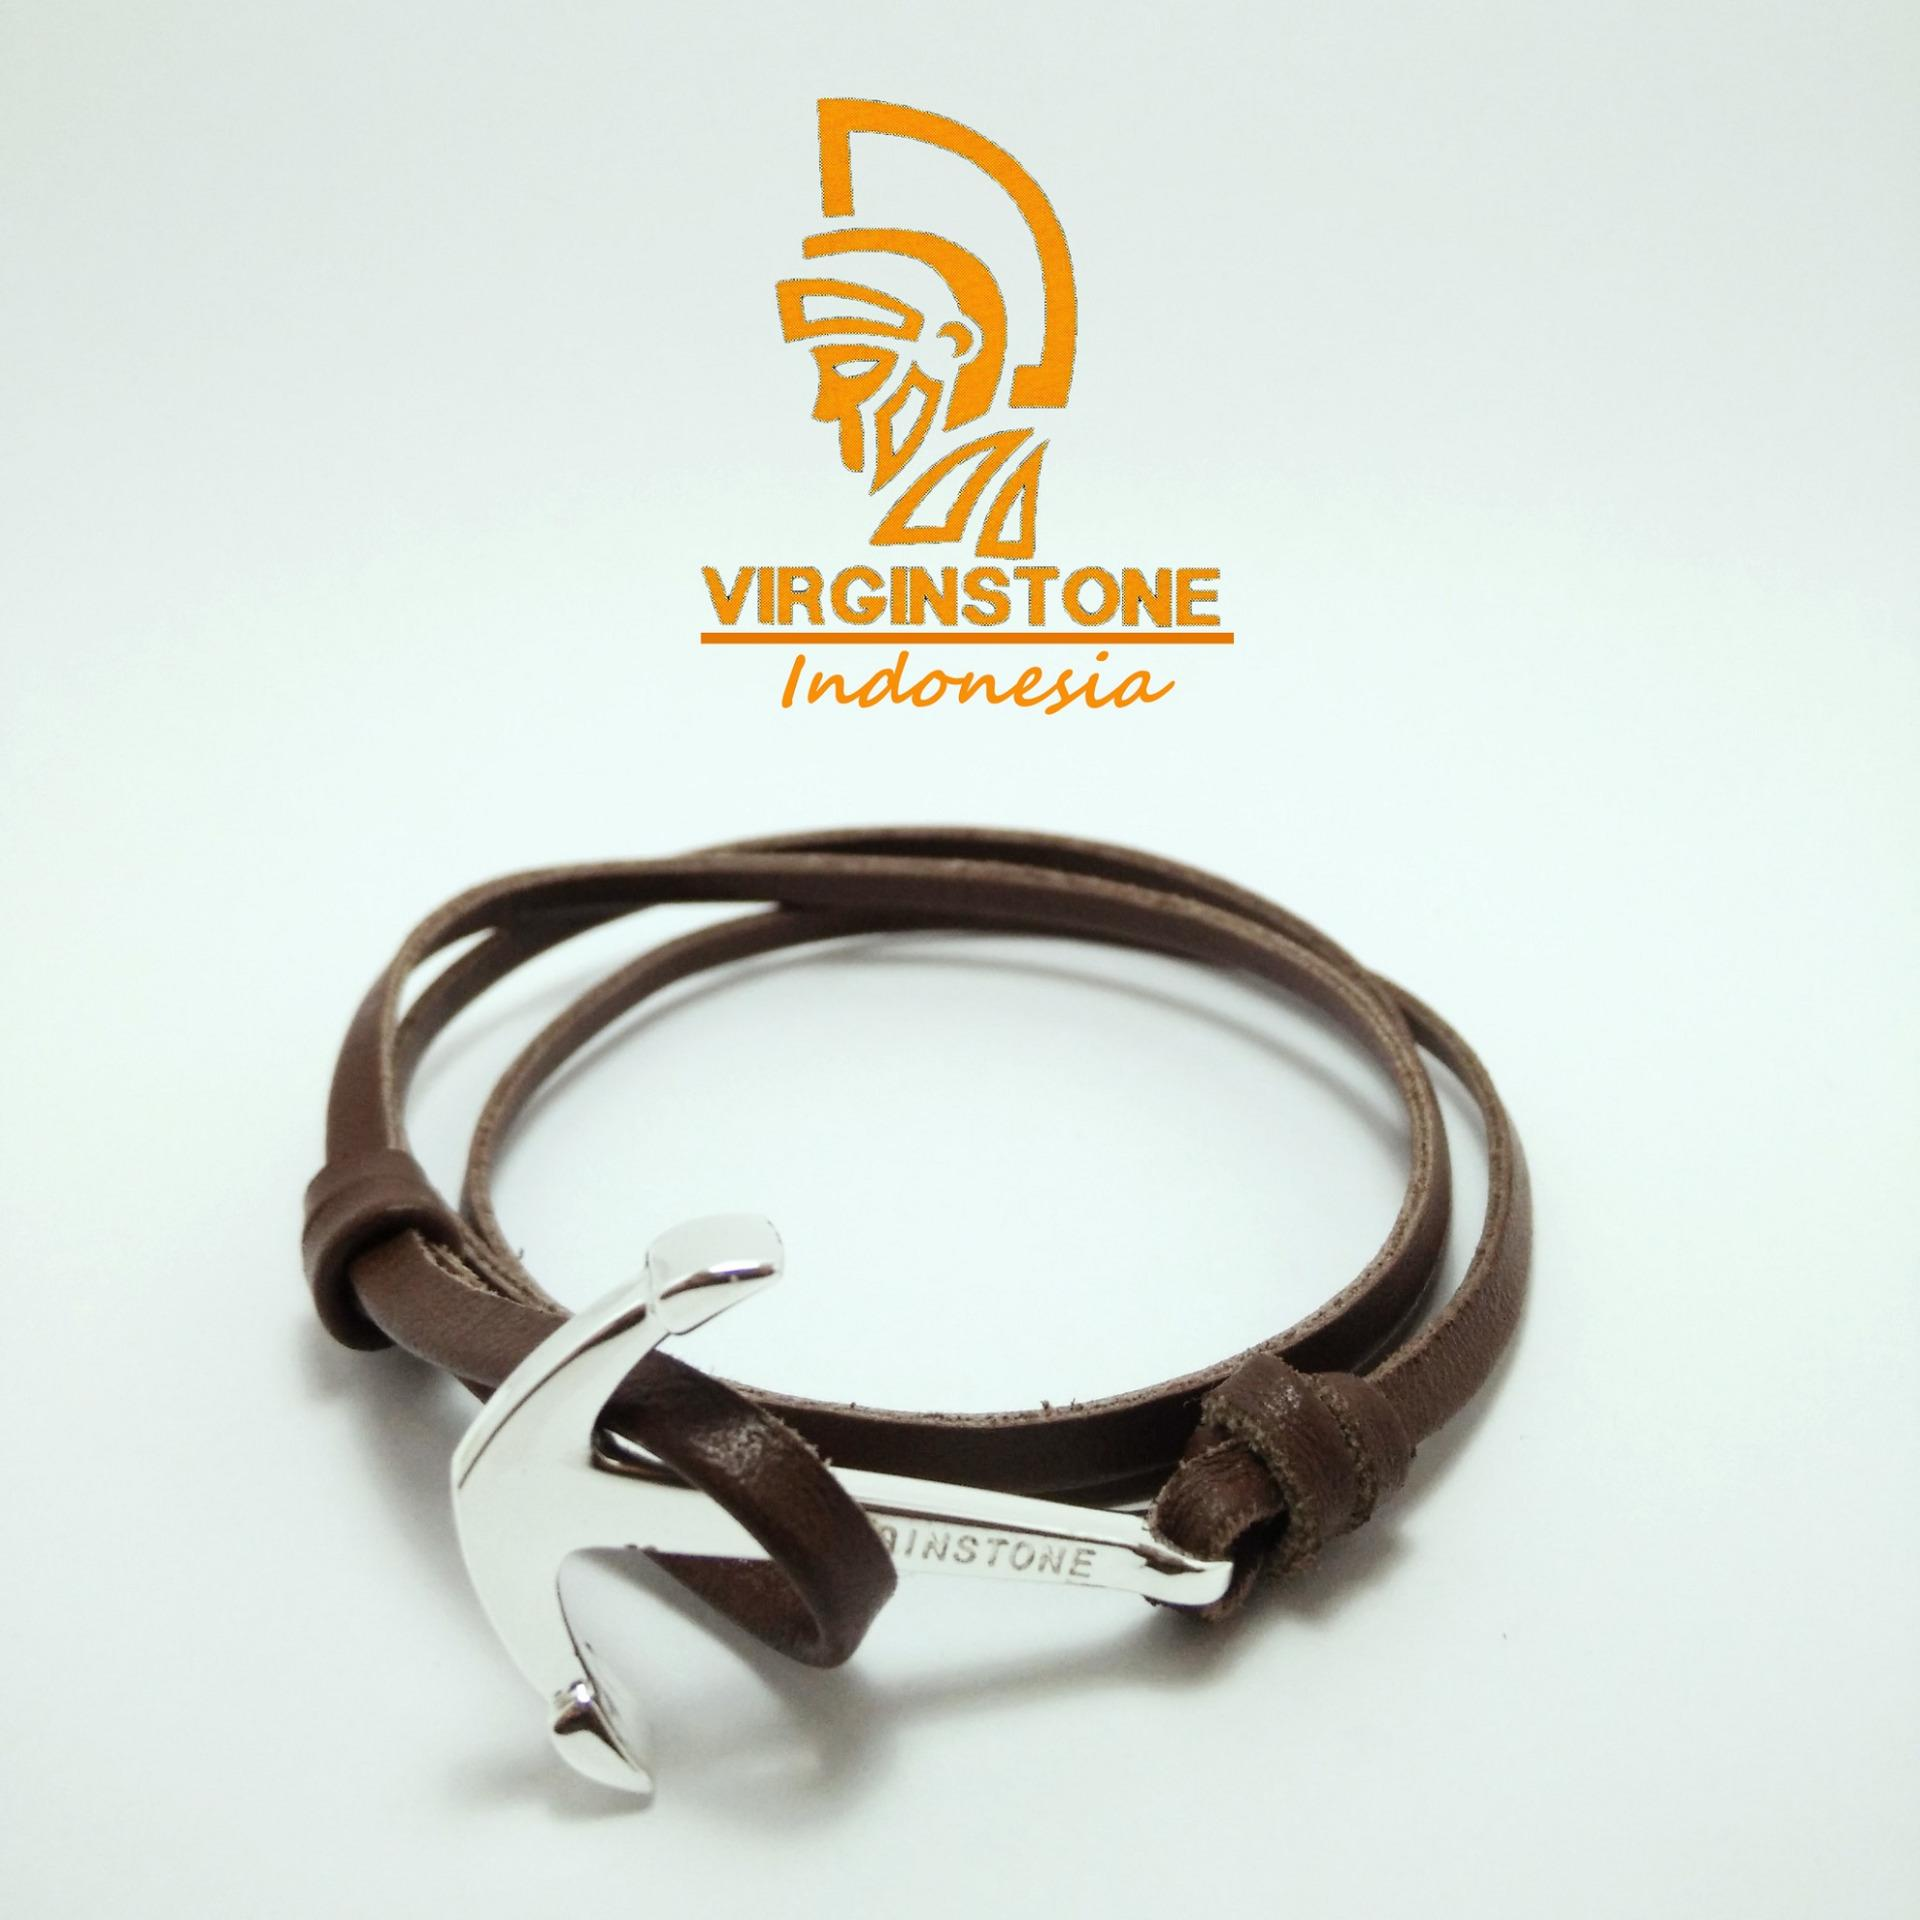 Flash Sale Gelang Virginstone Jangkar Kulit Silver Anchor Brown Leather (Dark Brown Colour)